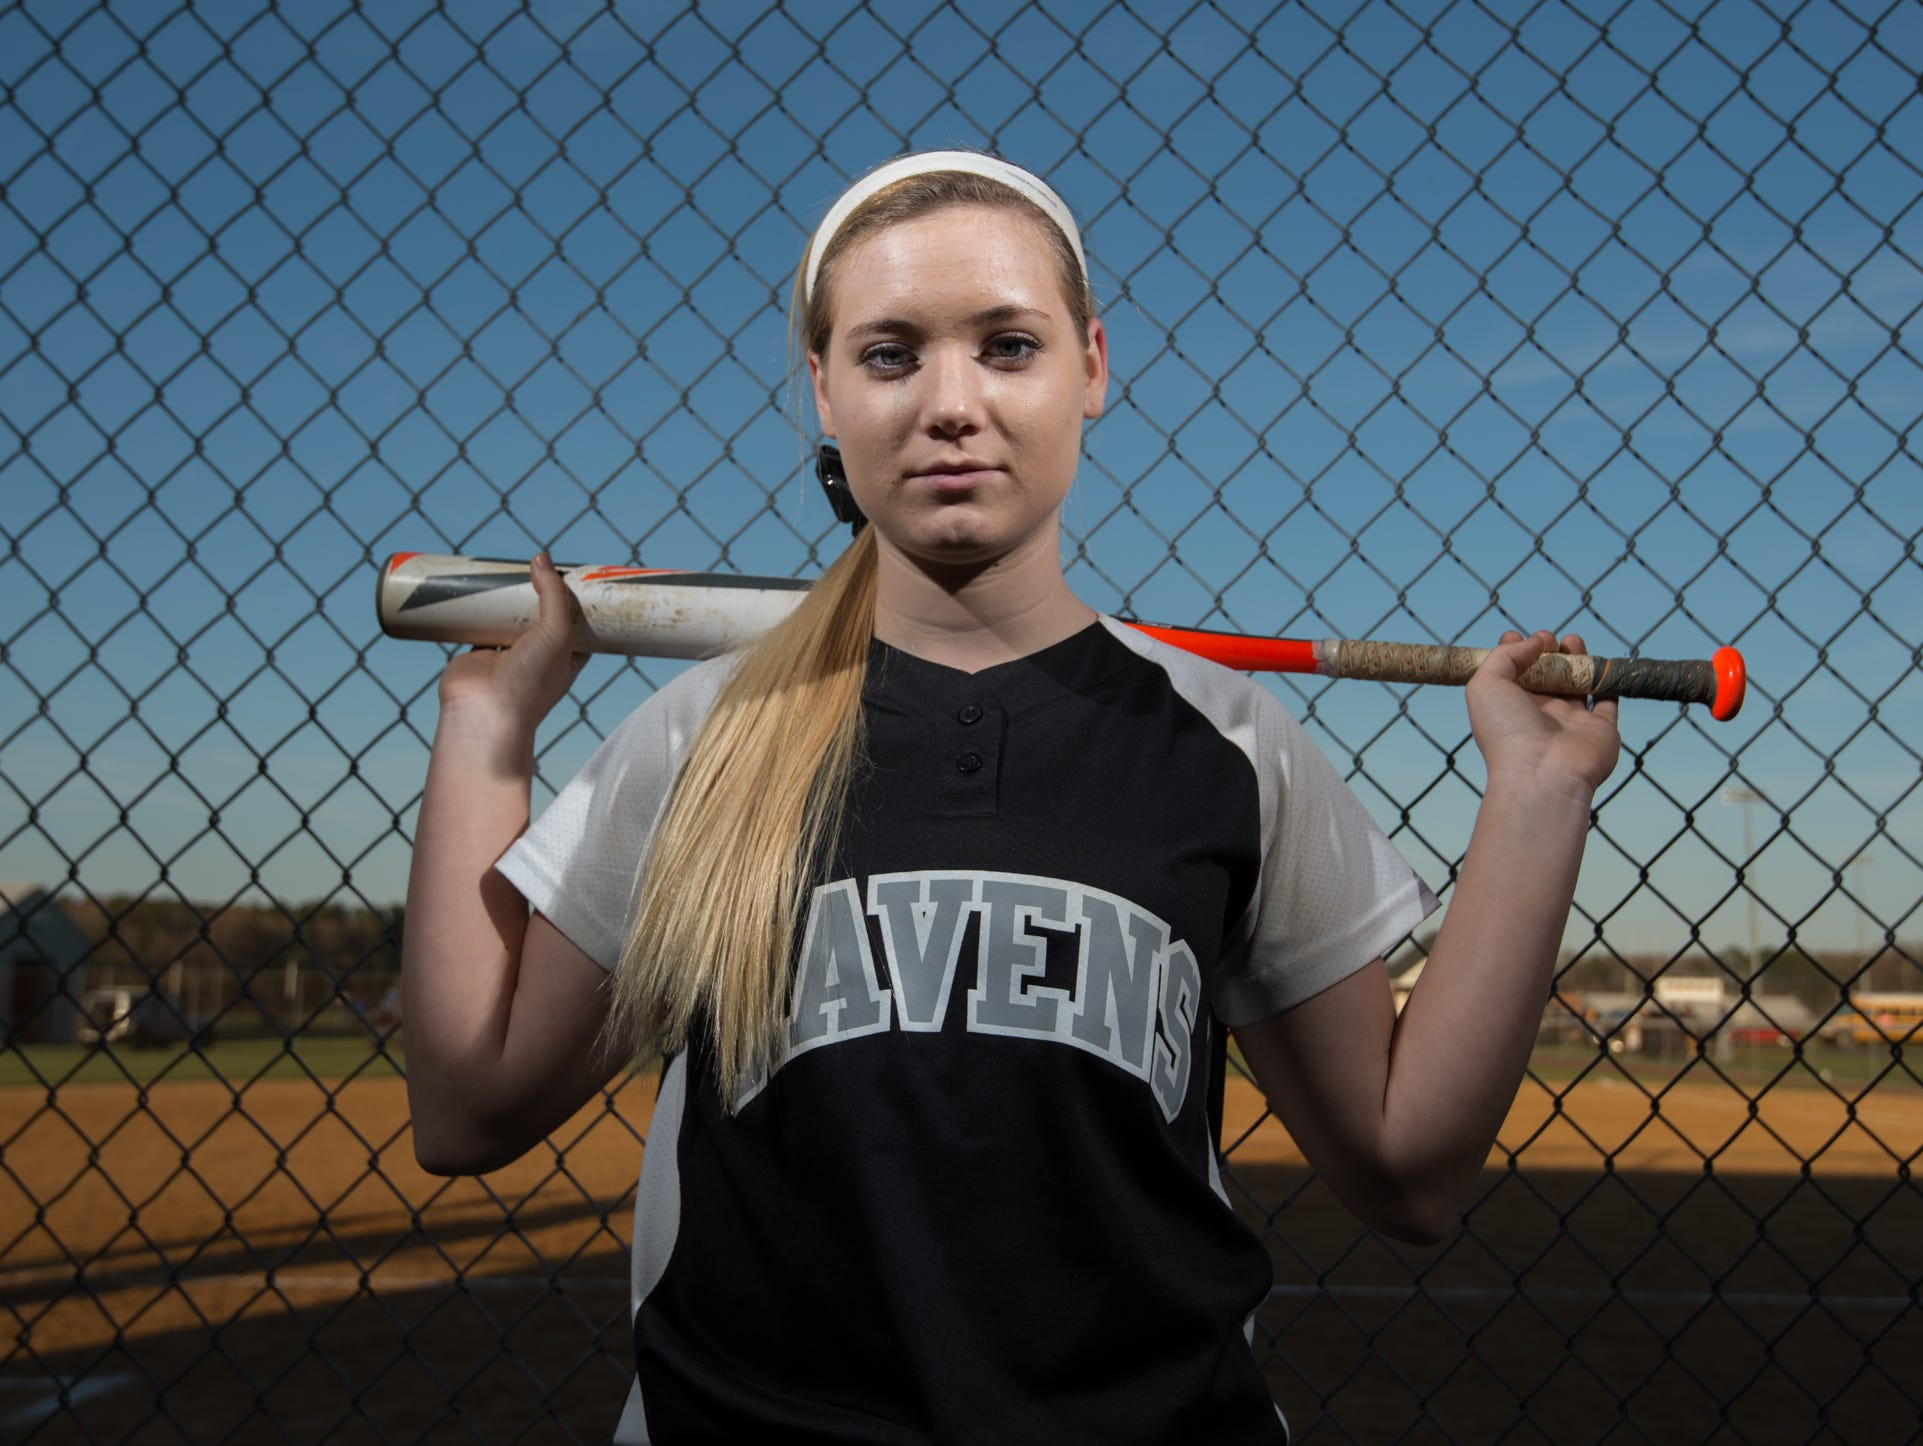 Sussex Tech catcher Shannon Lord went 2-for-3 with two doubles as the Ravens rallied to open their season with a 7-6 win over Sussex Central last Tuesday.